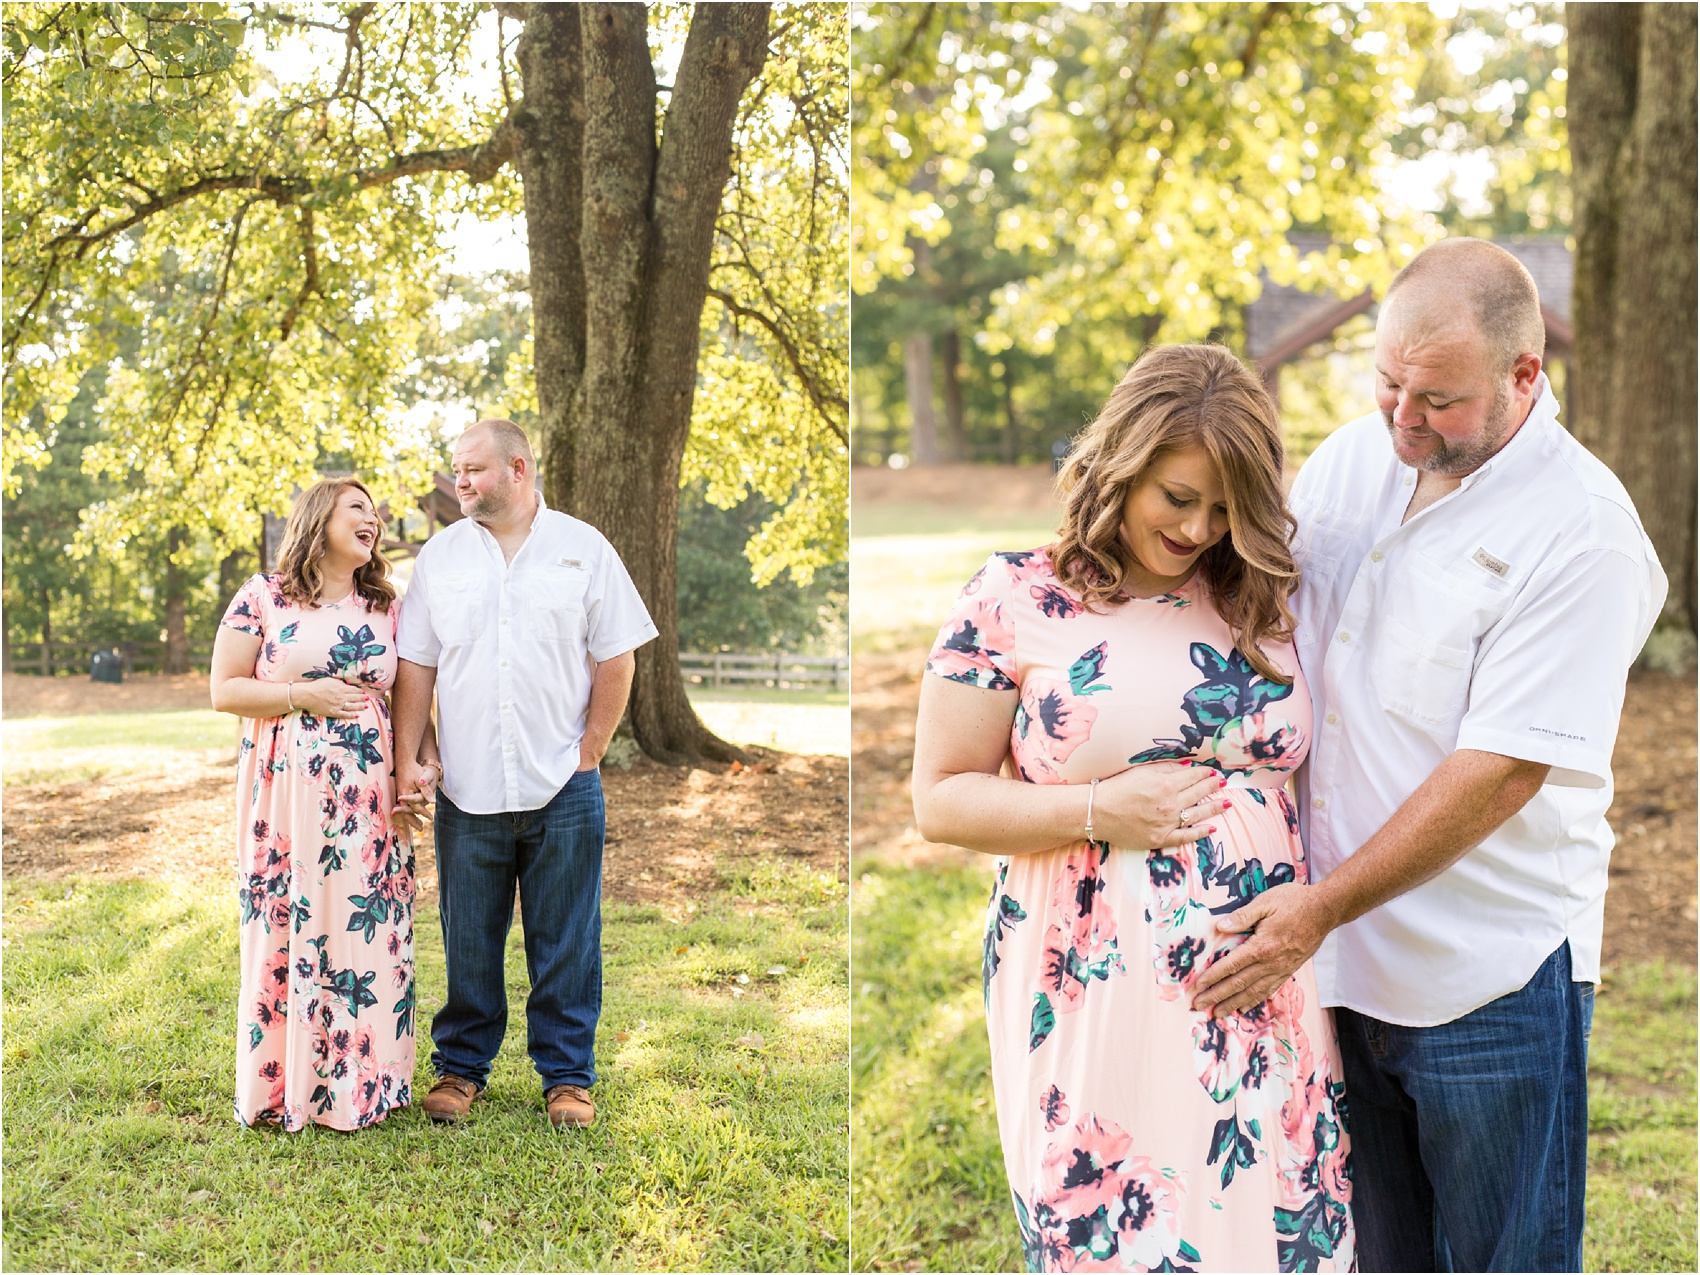 Savannah Eve Photography- Hinton Maternity-16.jpg